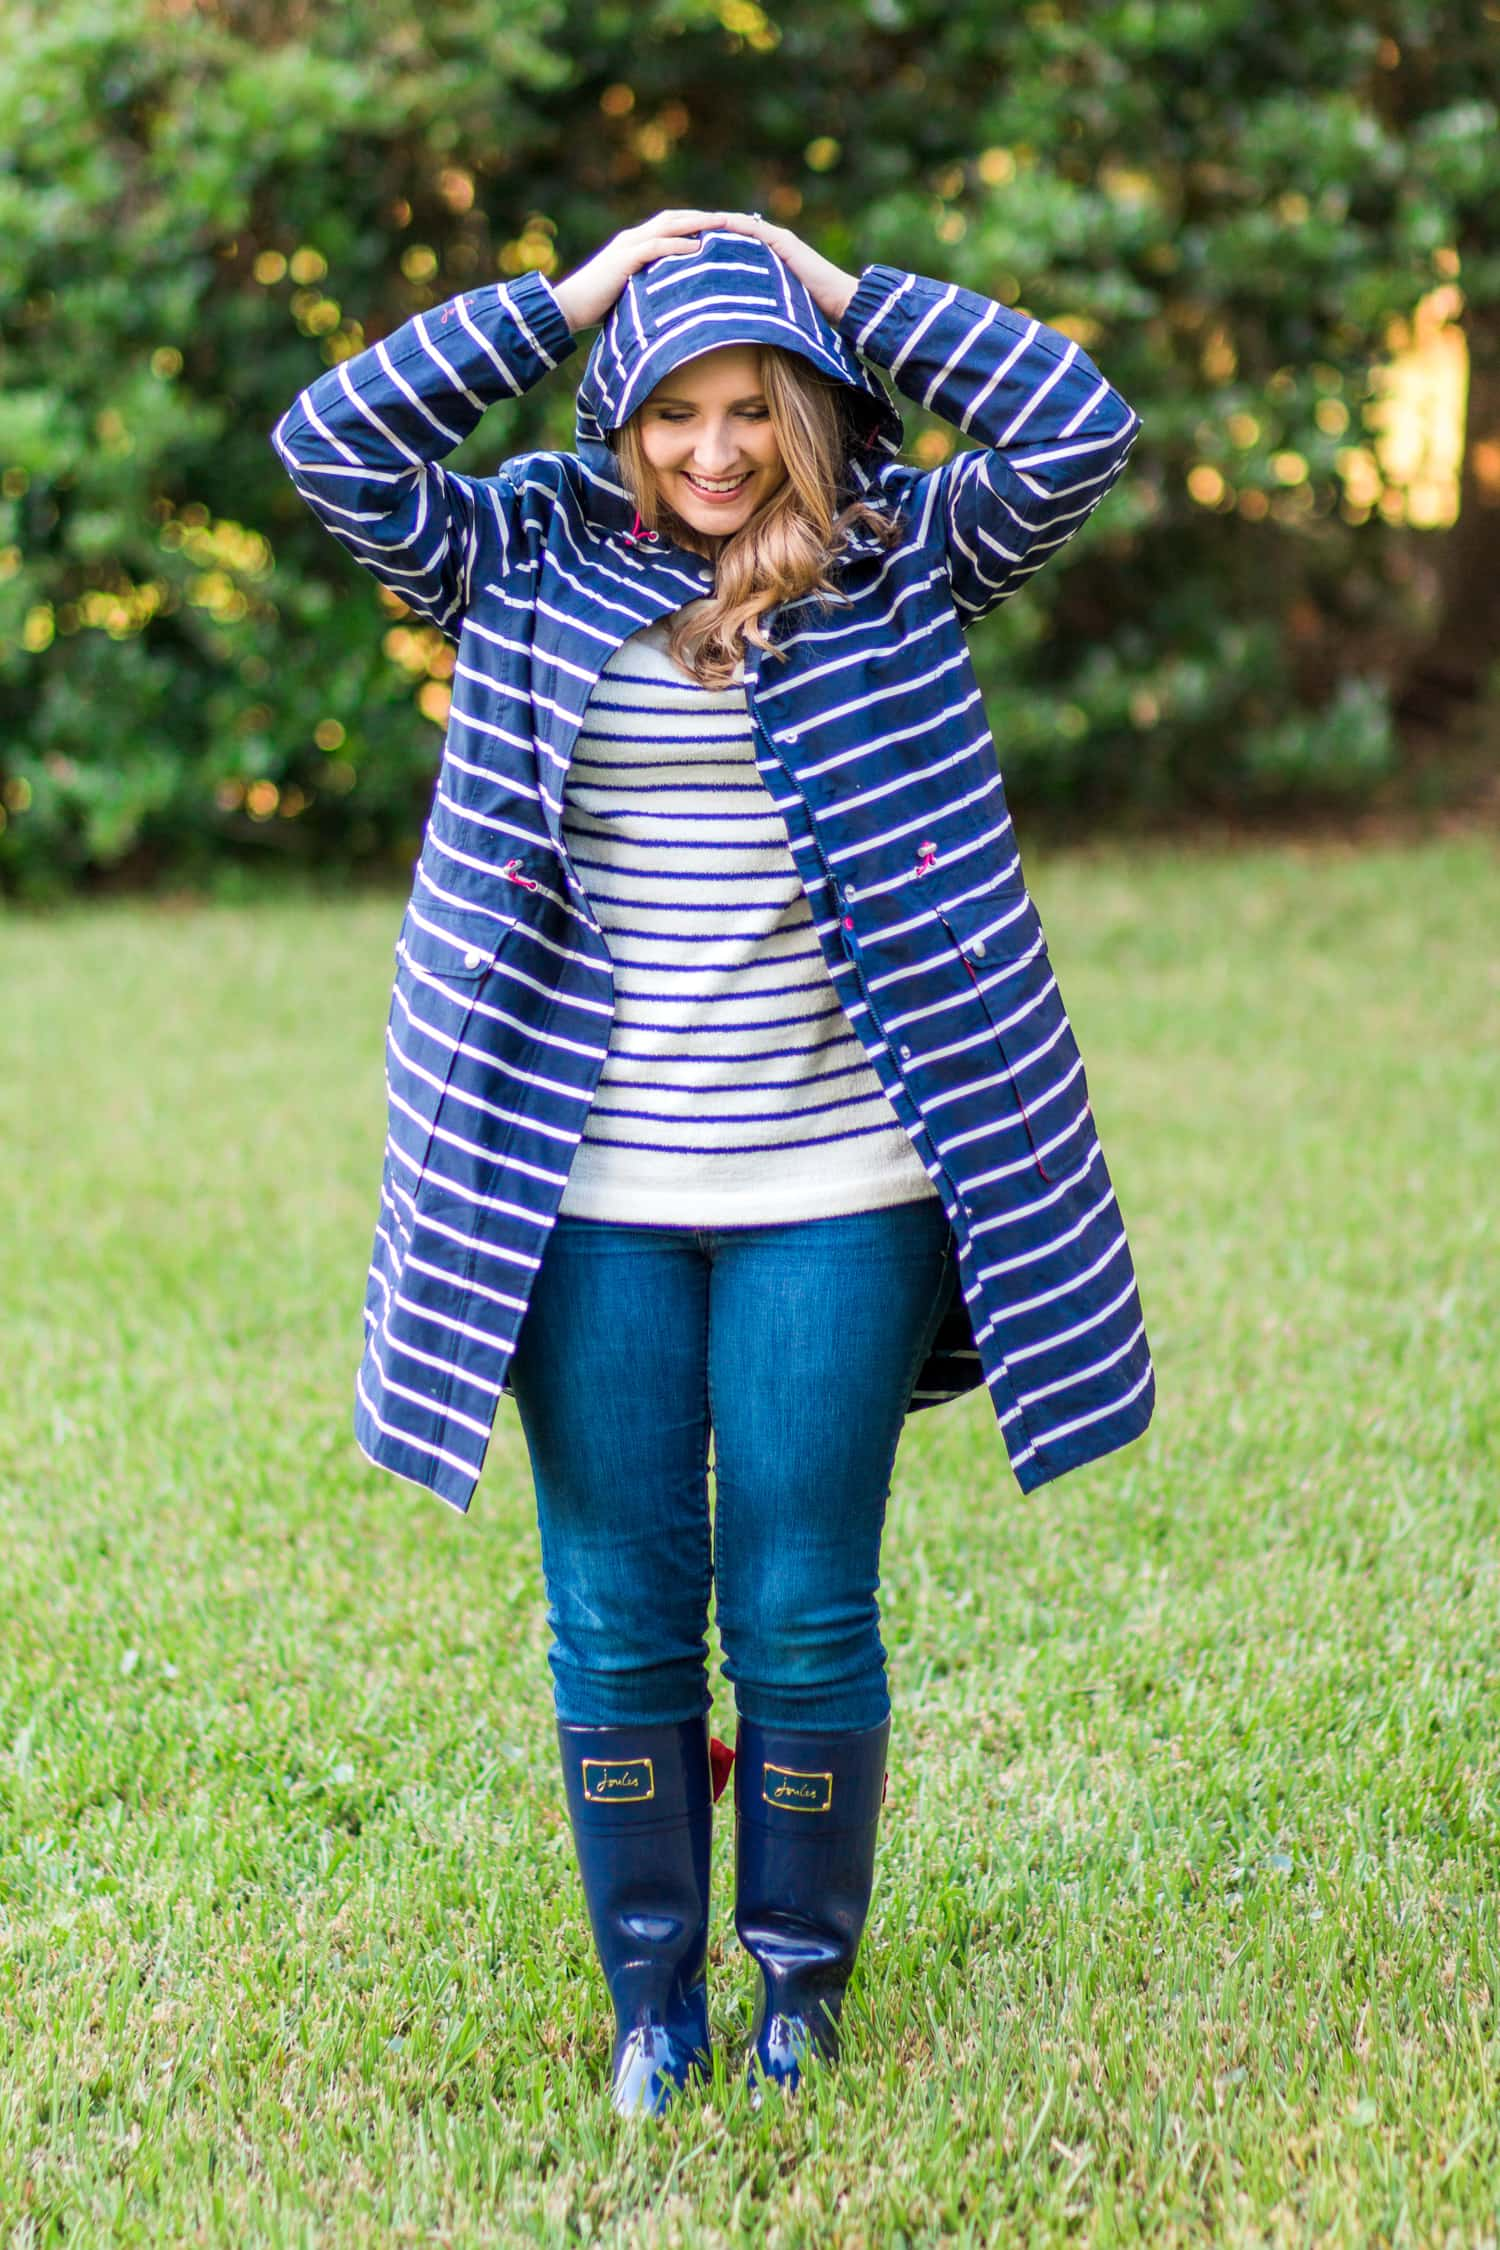 joules-rainboots-bow-striped-raincoat-striped-cozy-sweater-jeans-6541